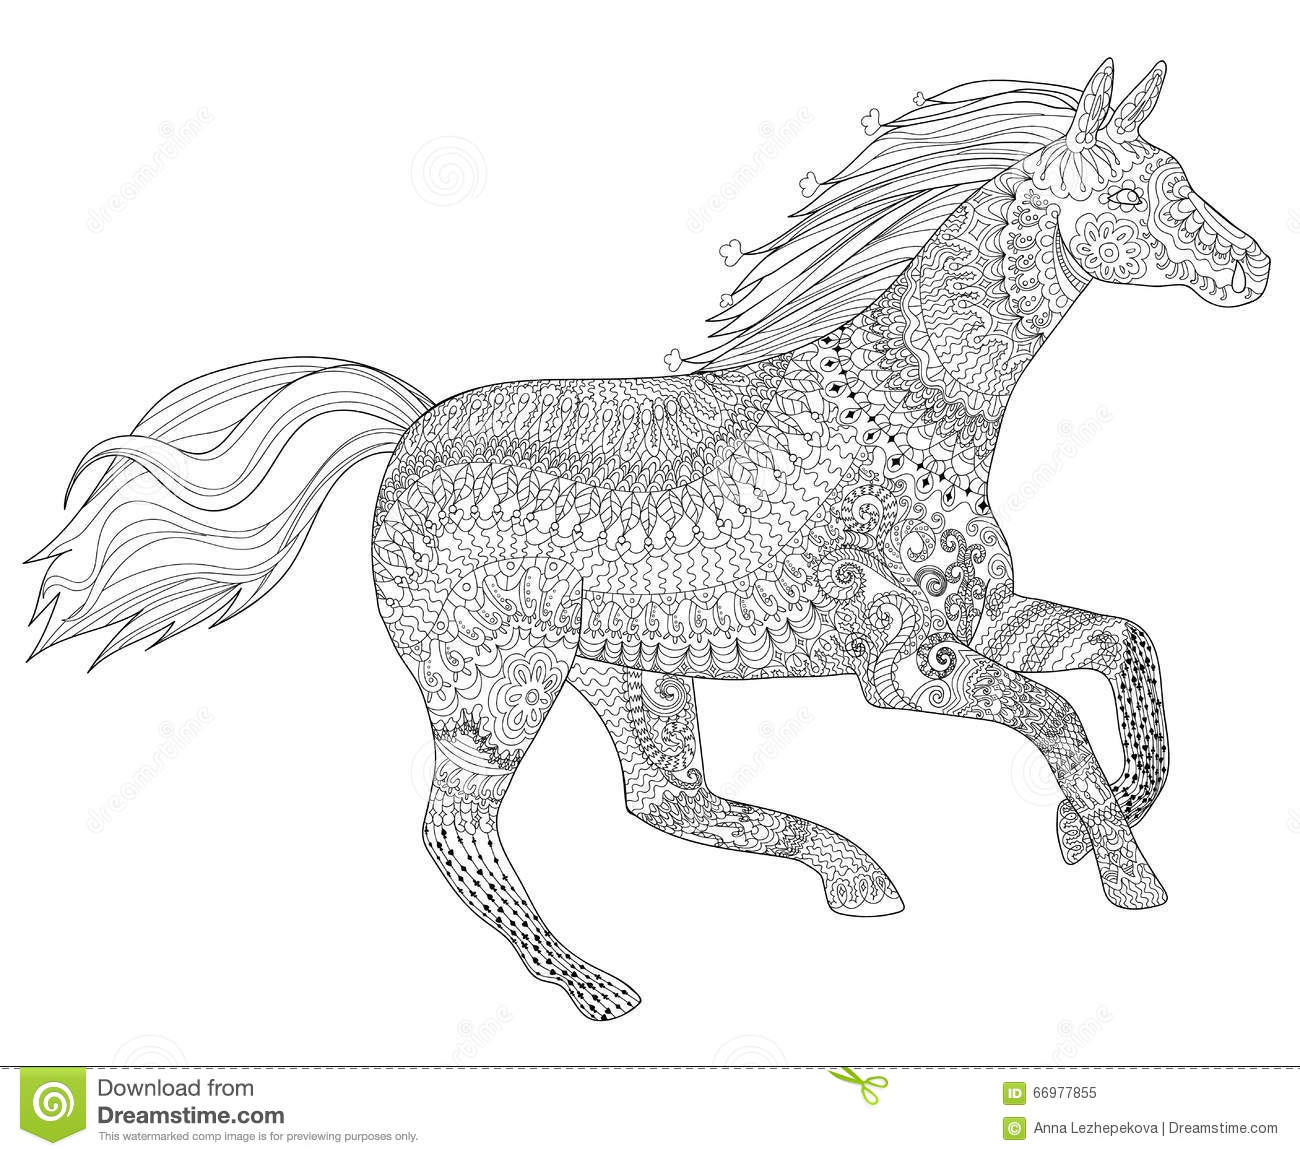 Running Horse With High Details Stock Vector - Image: 66977855